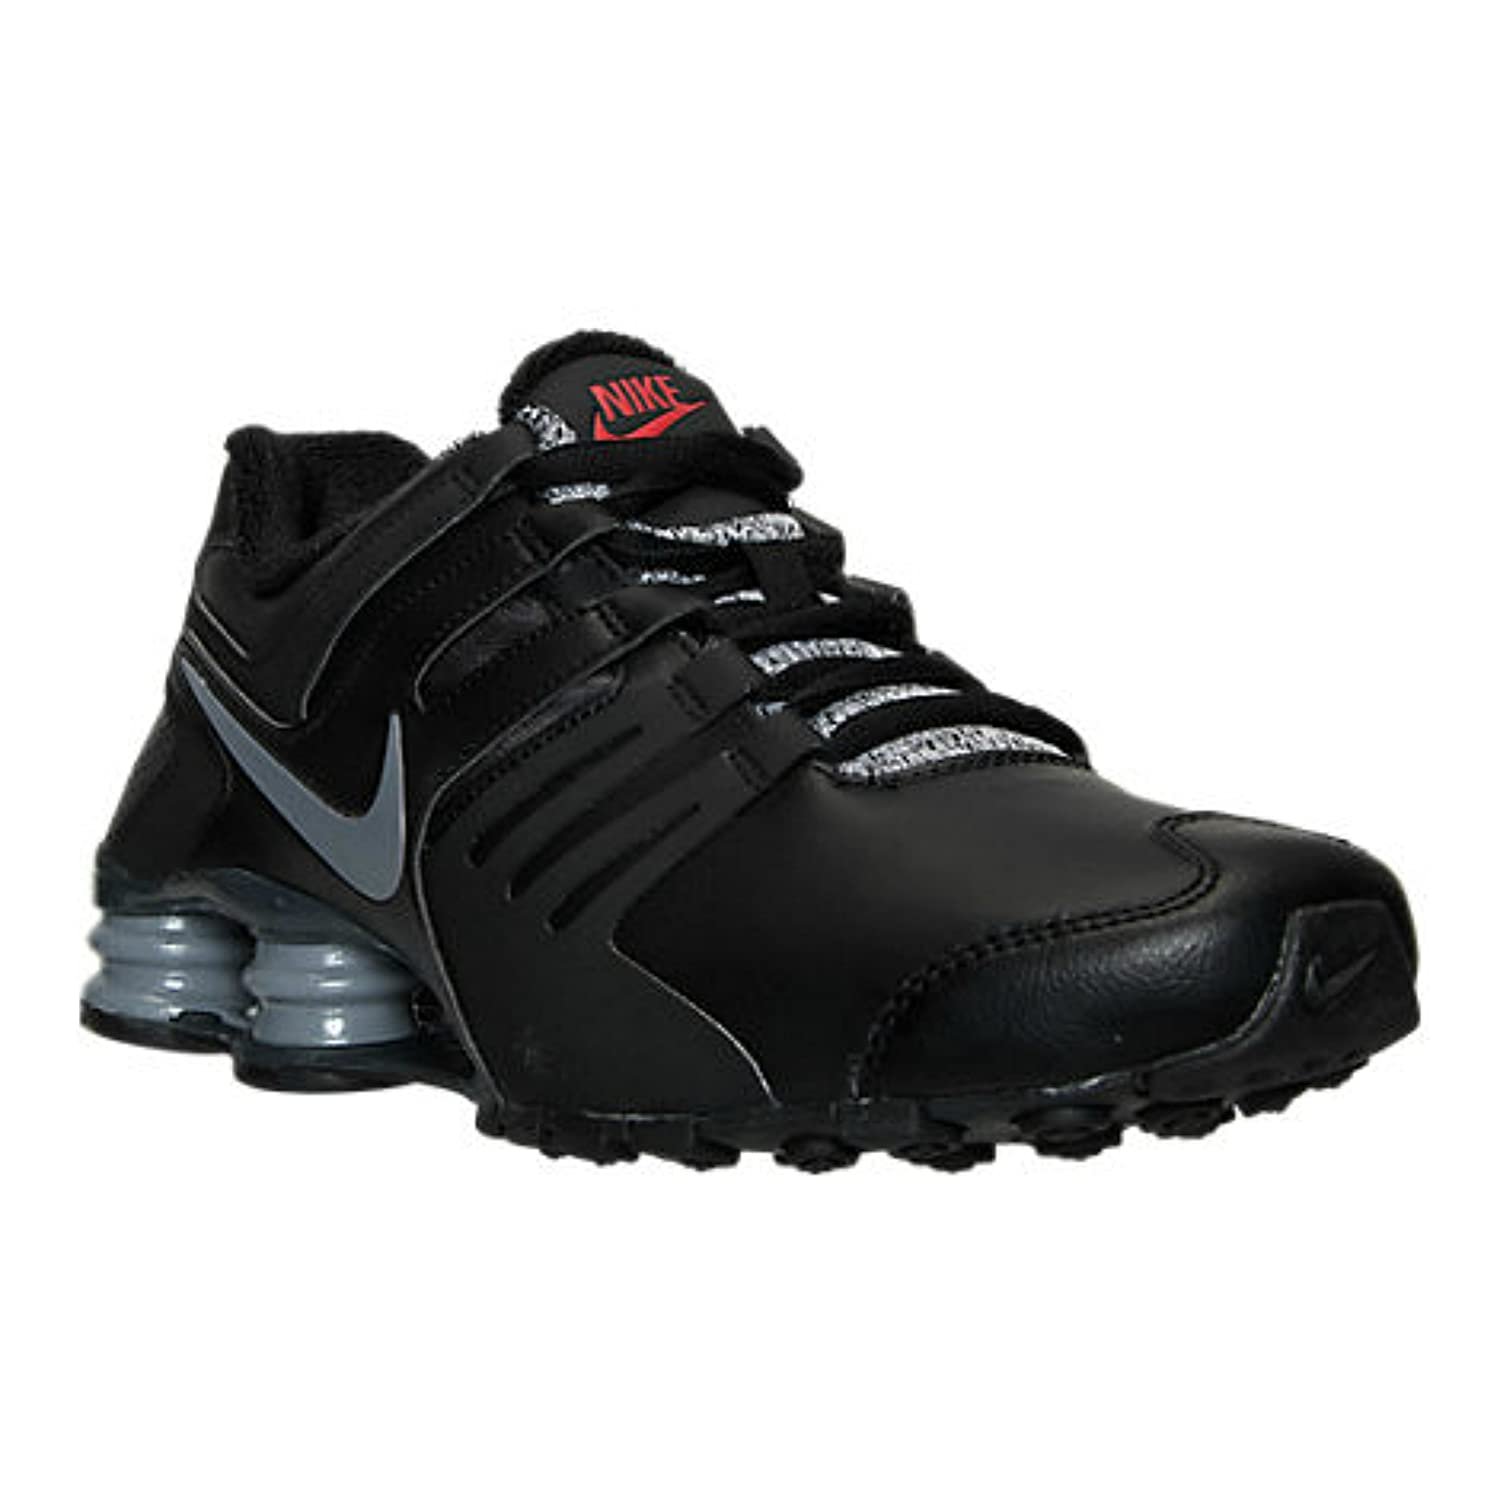 sale retailer d8300 5b6f0 Amazon.com   Nike Shox Current Running Shoes Athletic Sneakers Black Cool  Grey Red Anthracite (8.5)   Track   Field   Cross Country